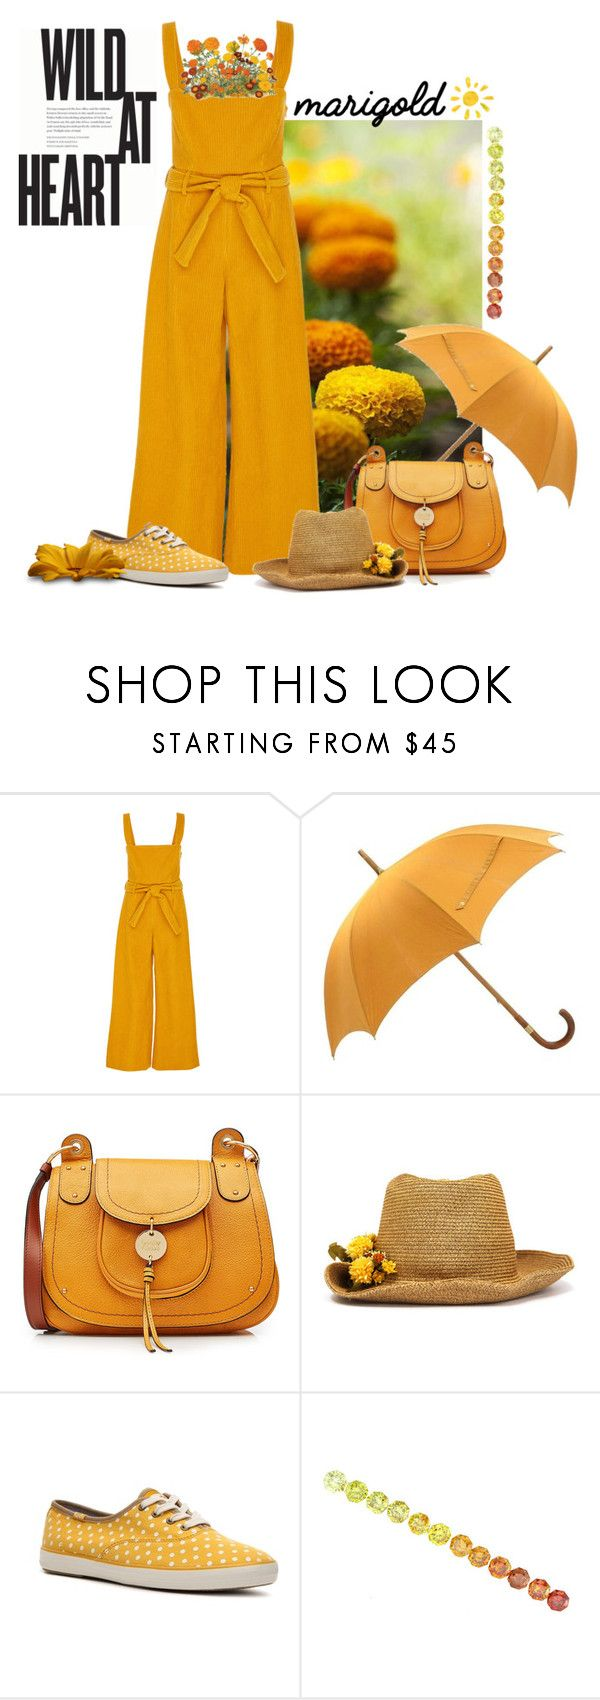 """Marigolden"" by justange ❤ liked on Polyvore featuring Mara Hoffman, Hermès, See by Chloé, CA4LA and Keds"